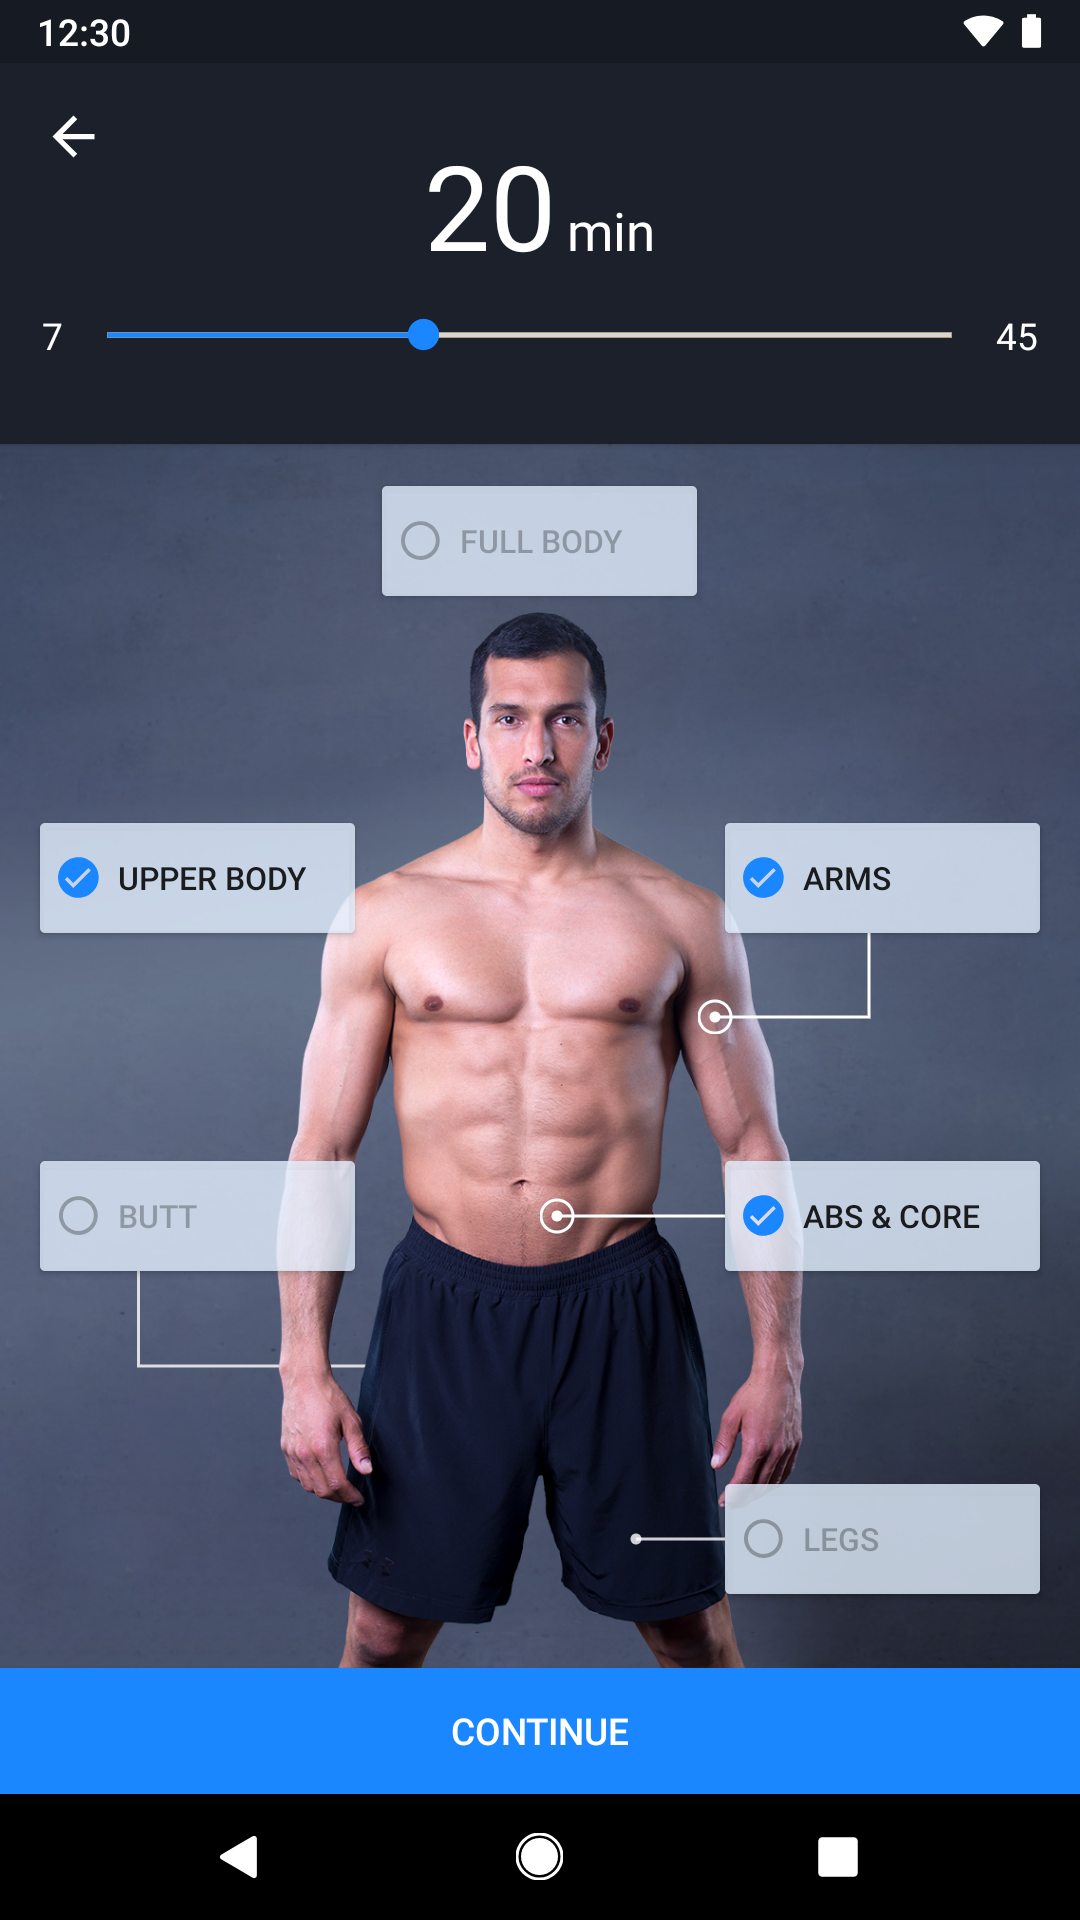 android_sailfish_workout_creator_male_en-US.png